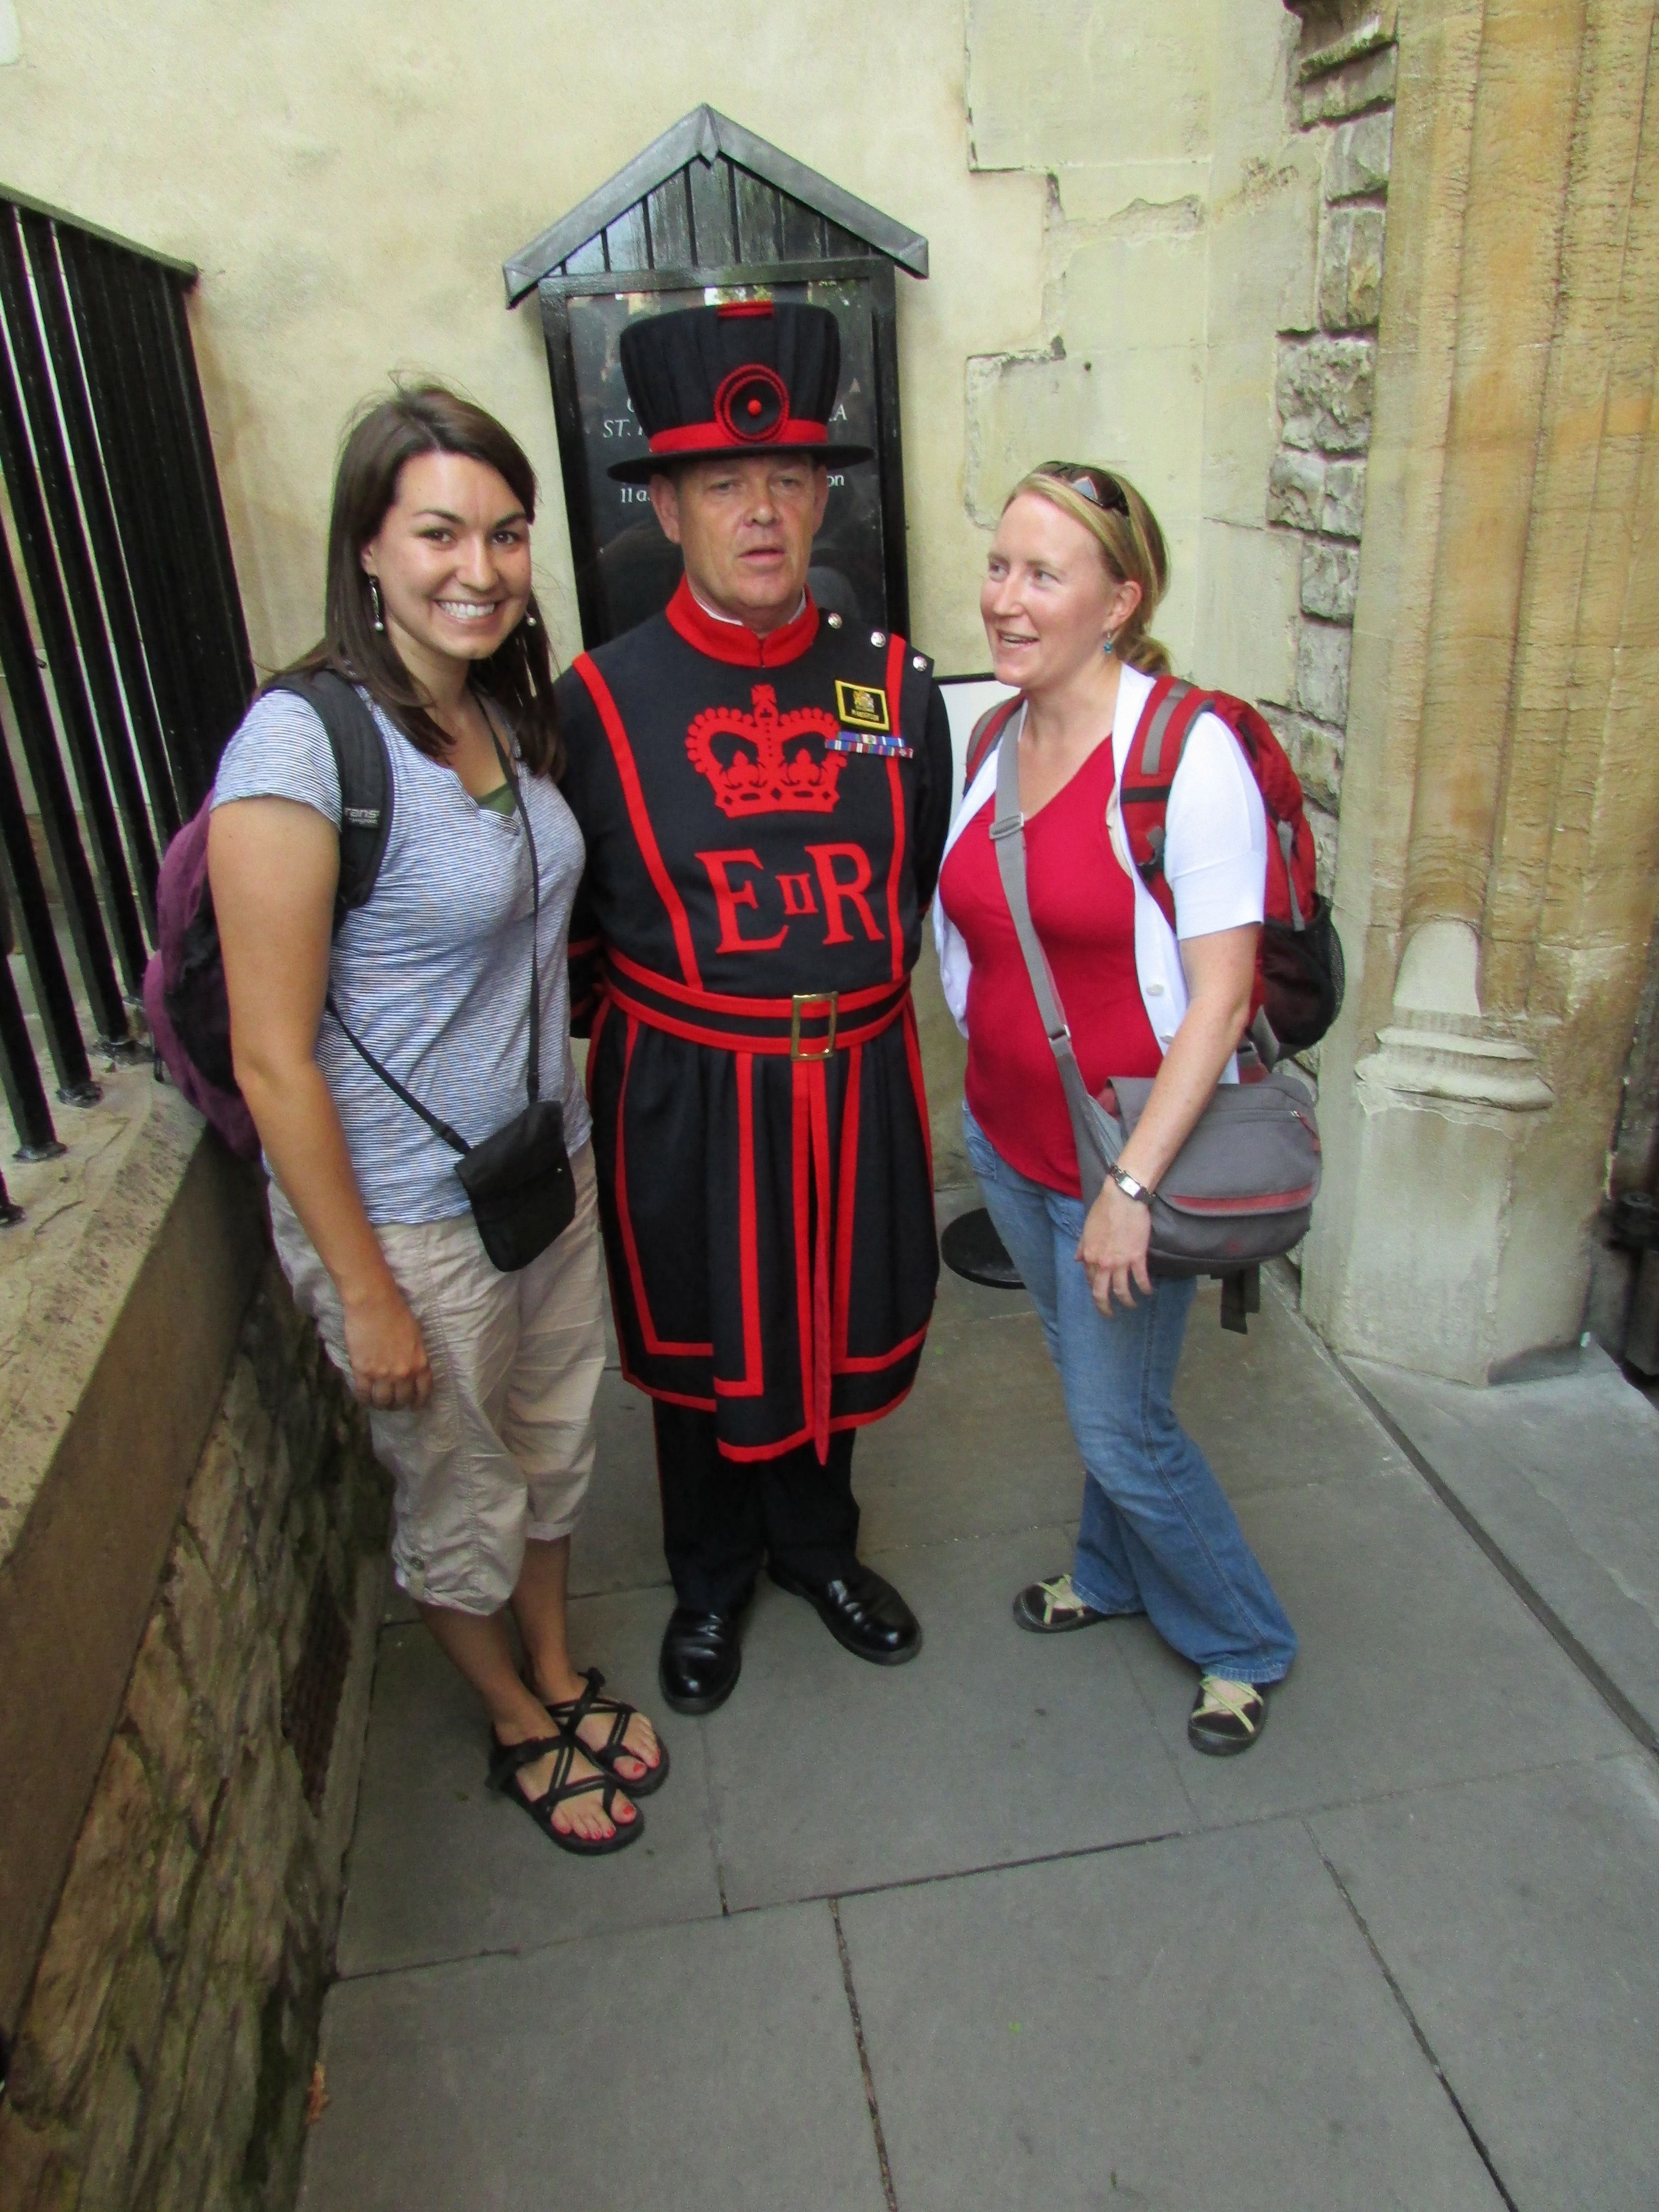 Lauren Jill And One Heck Of A Yeoman Warder Yeoman Warder Shutterfly Books Fashion